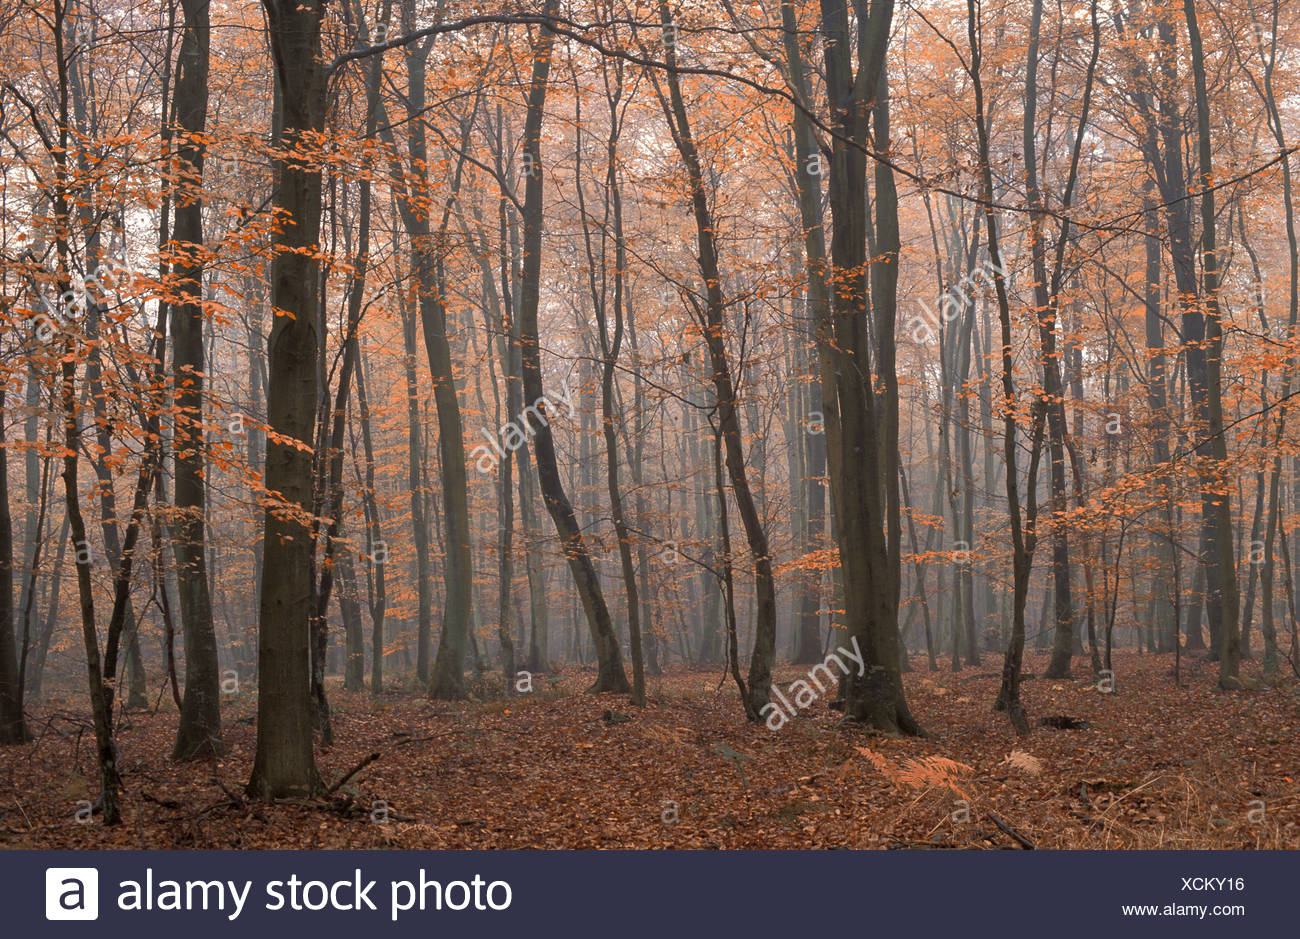 Beech Tree Forest, near St. Saens, Normandy, France, Europe, forest, trees, wood - Stock Image